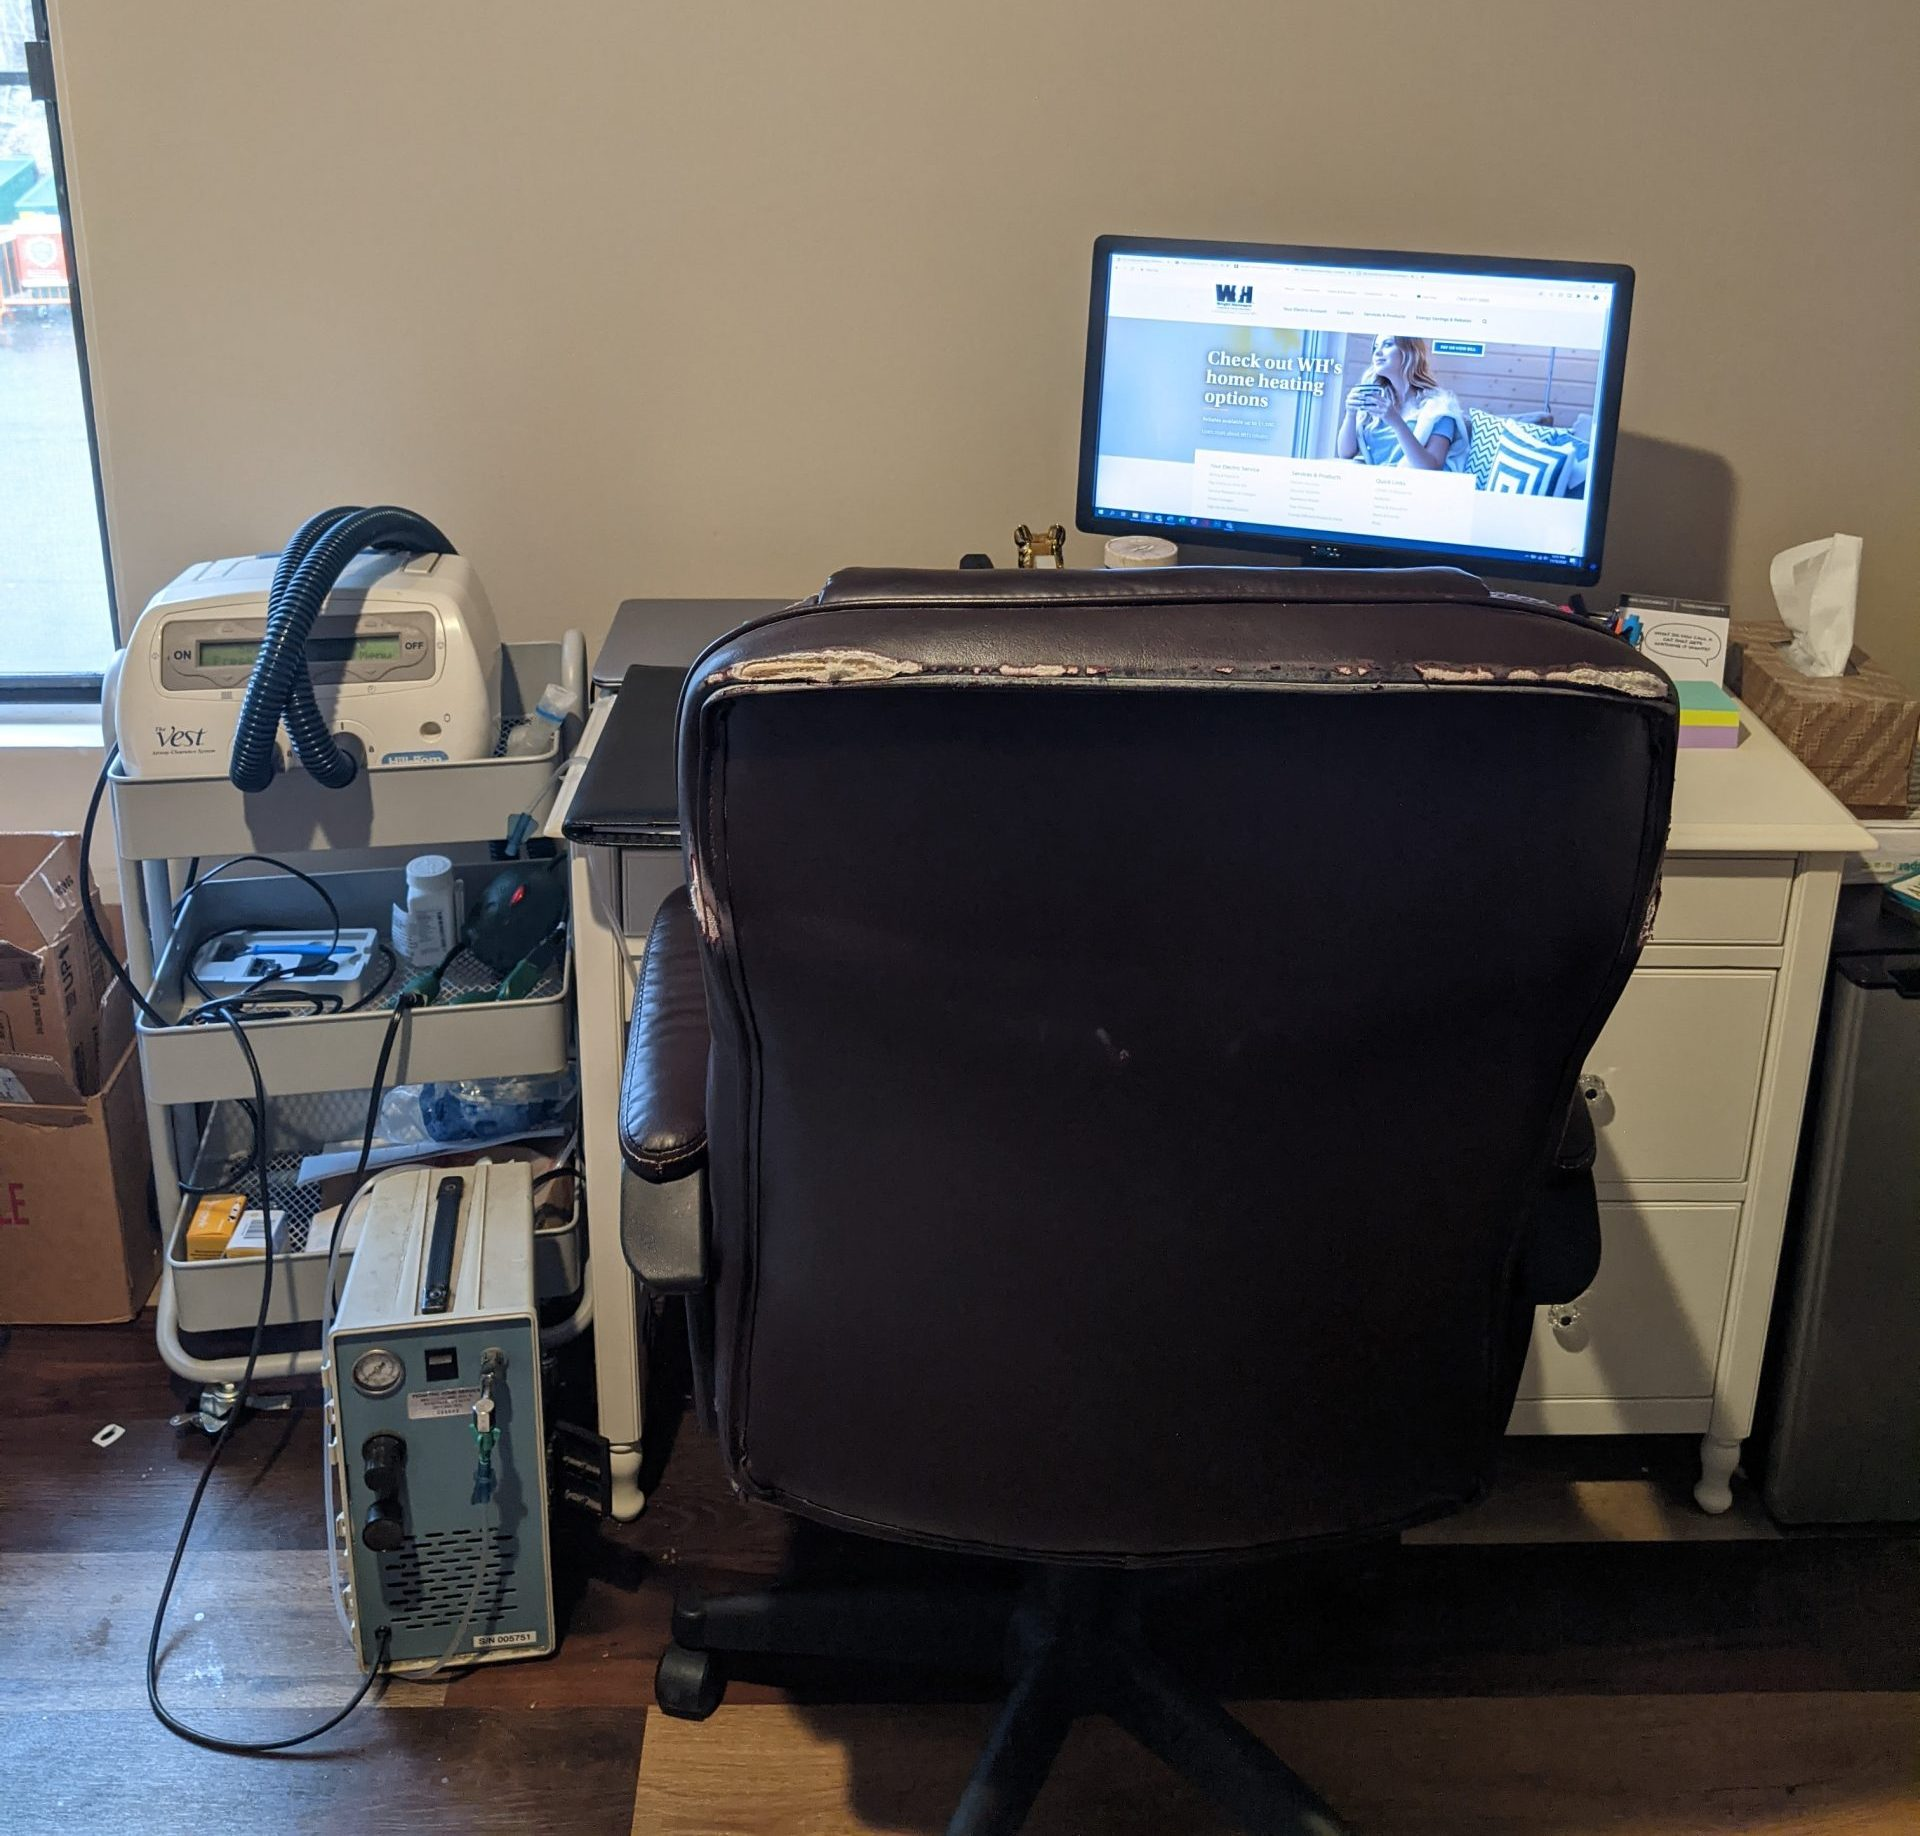 My work-from-home setup: computer, desk, medical equipment all next to each other